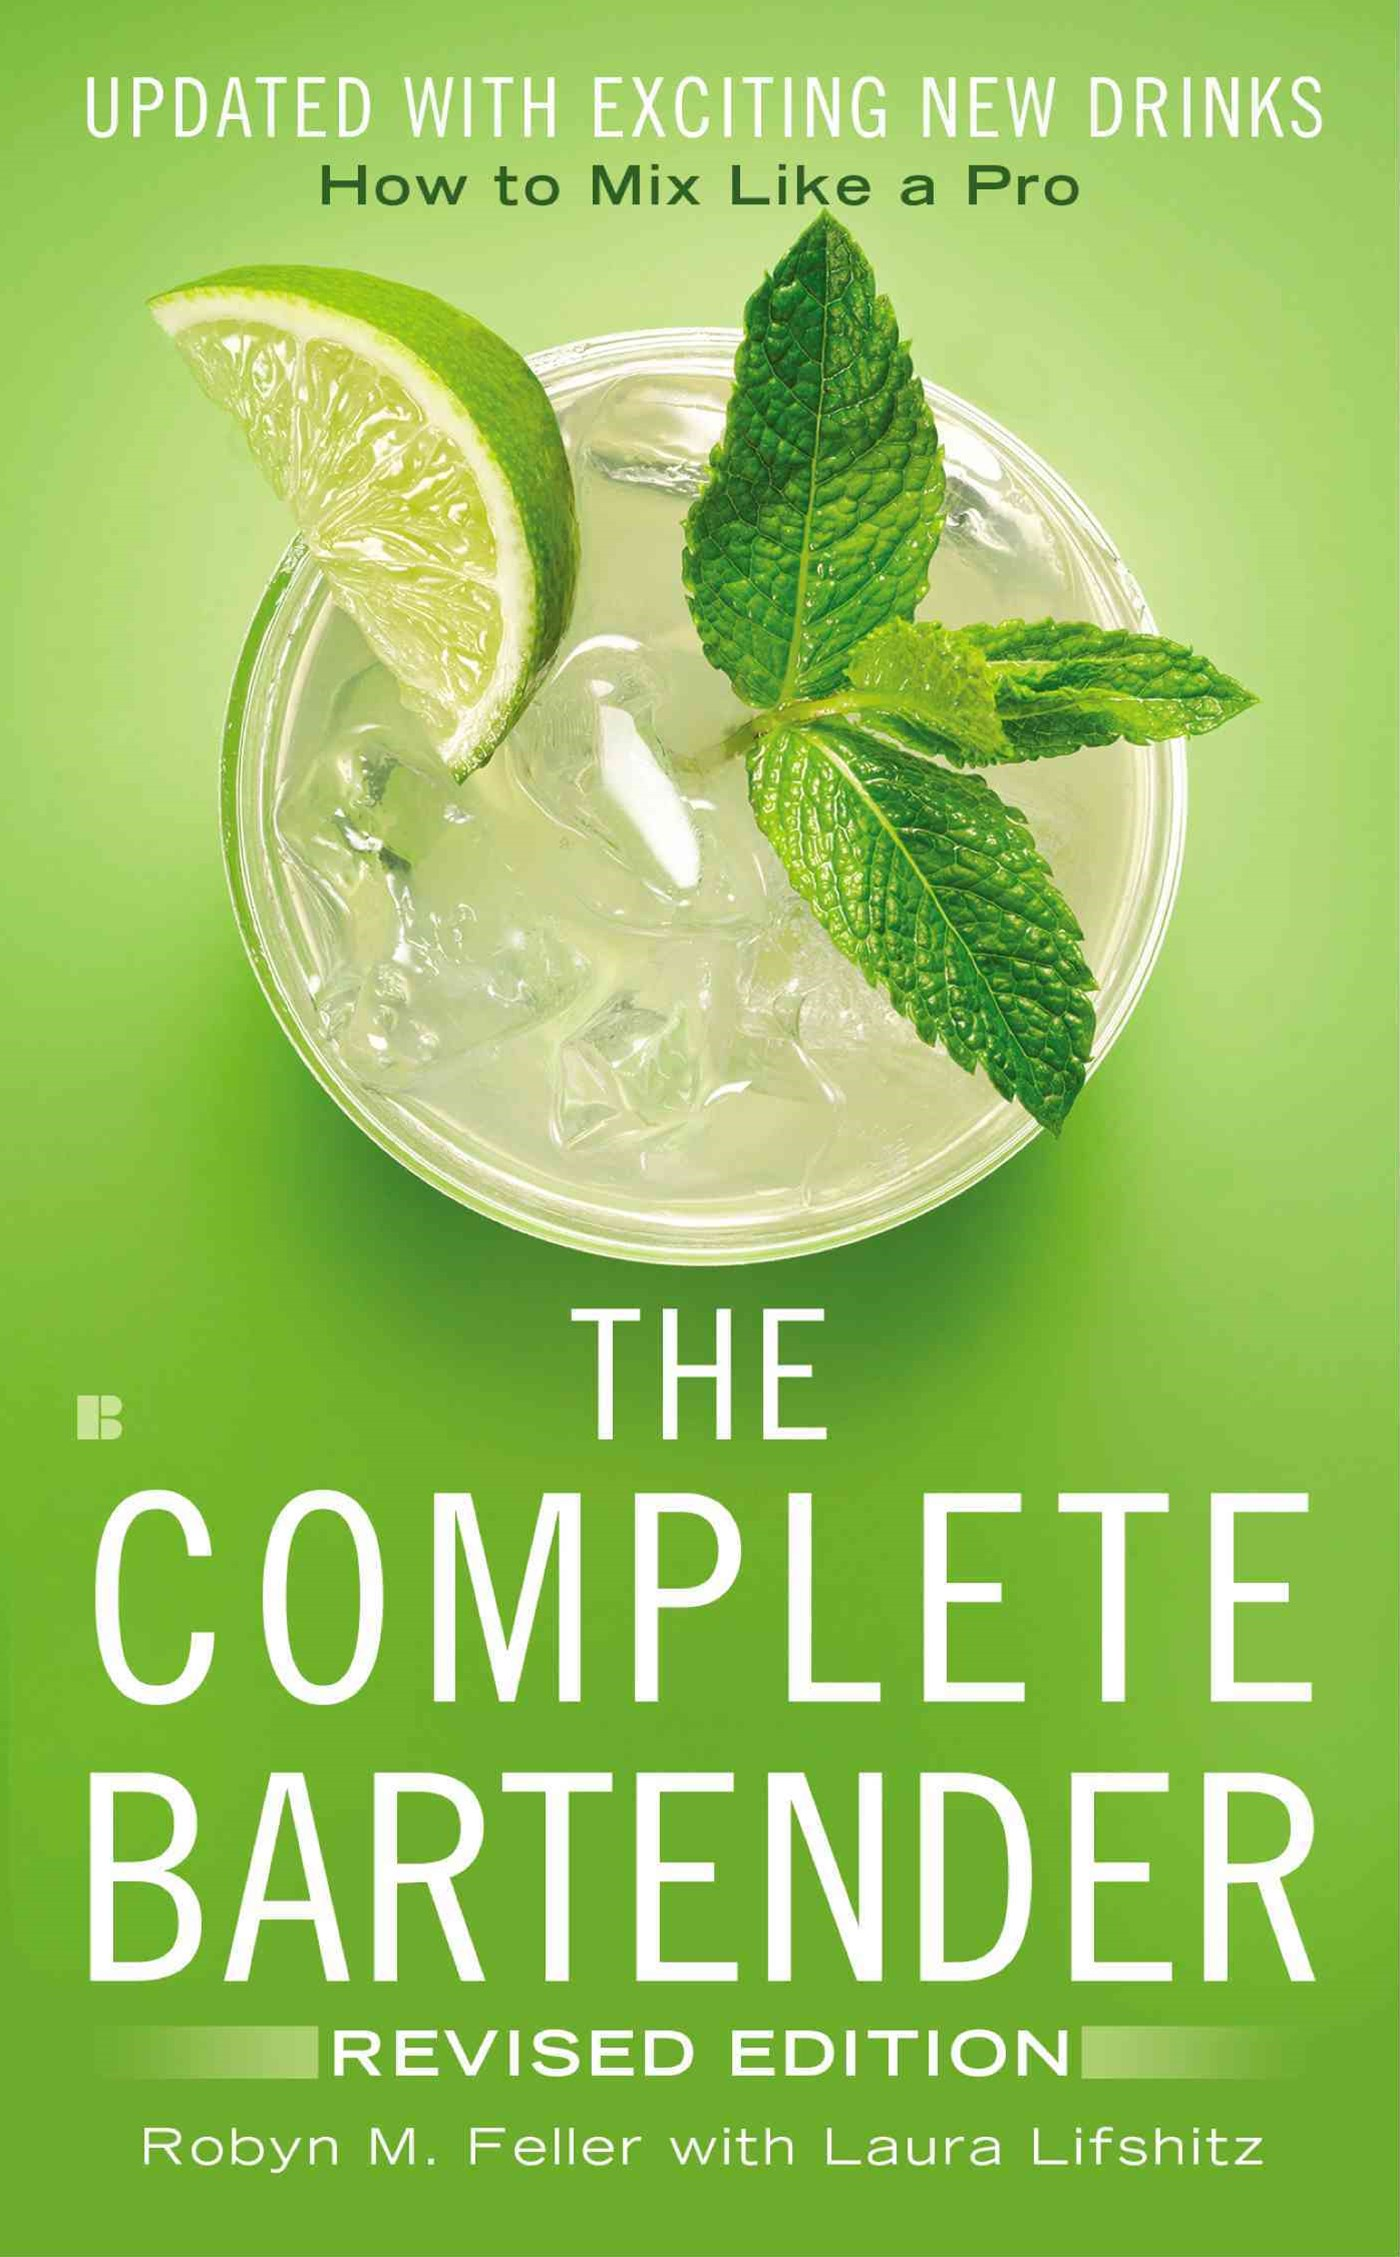 The Complete Bartender: Revised Edition